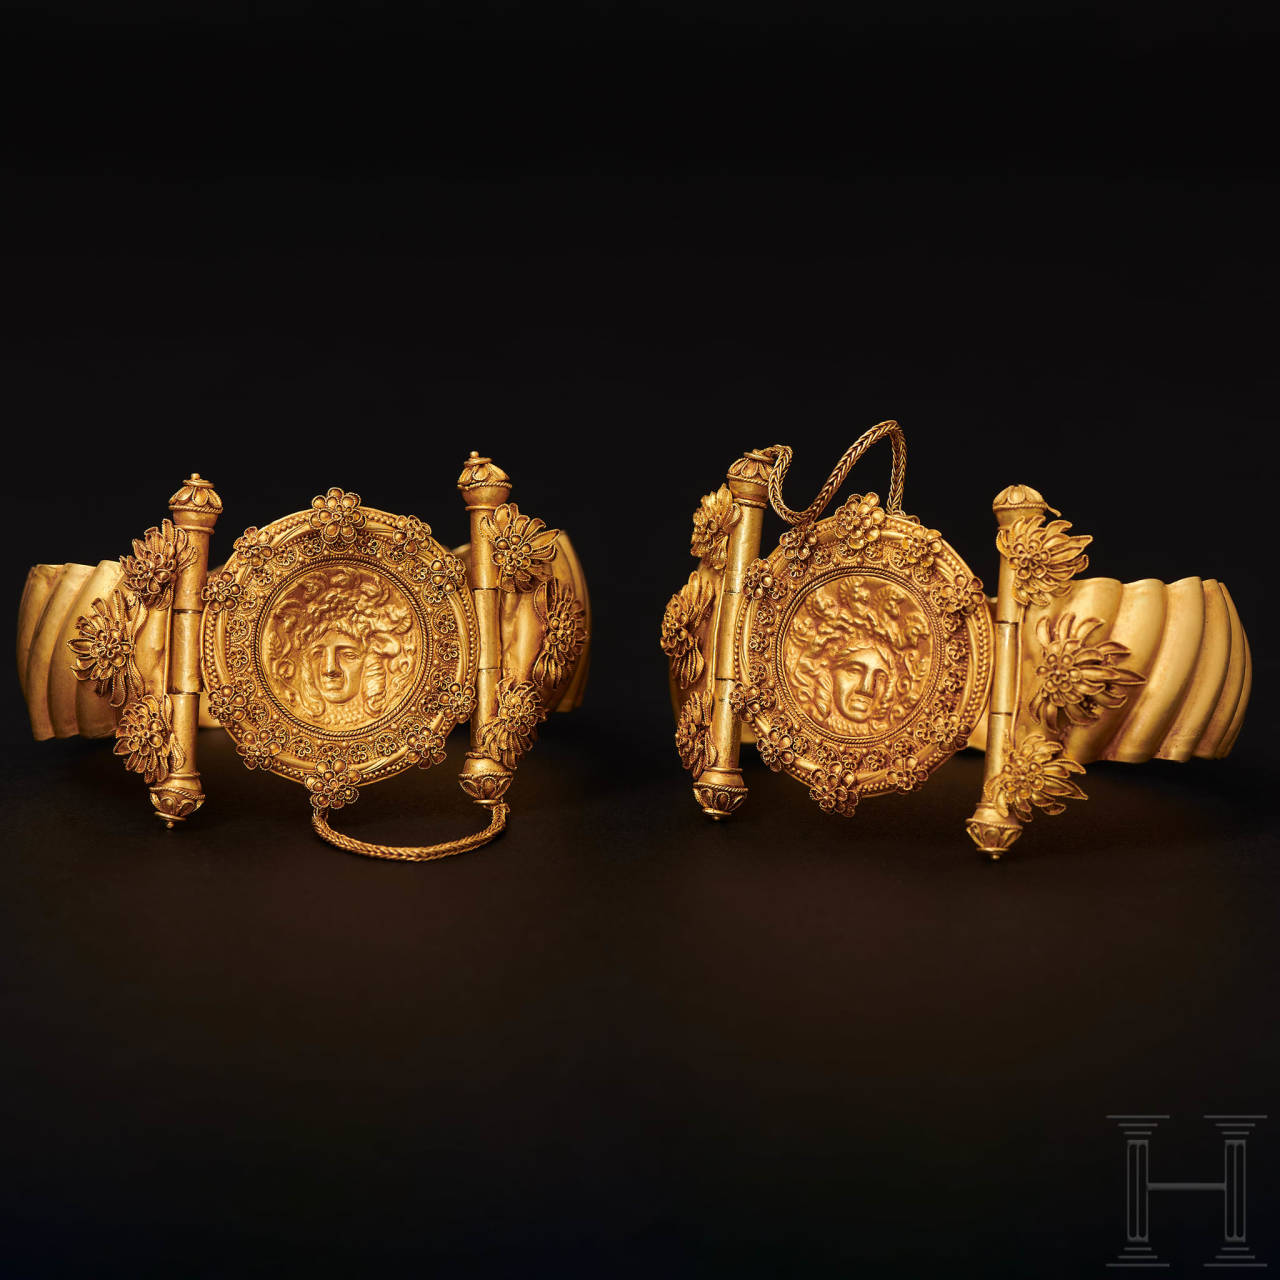 An elegant pair of finely worked, early Hellenistic gold bracelets, 4th - 3rd century B.C.